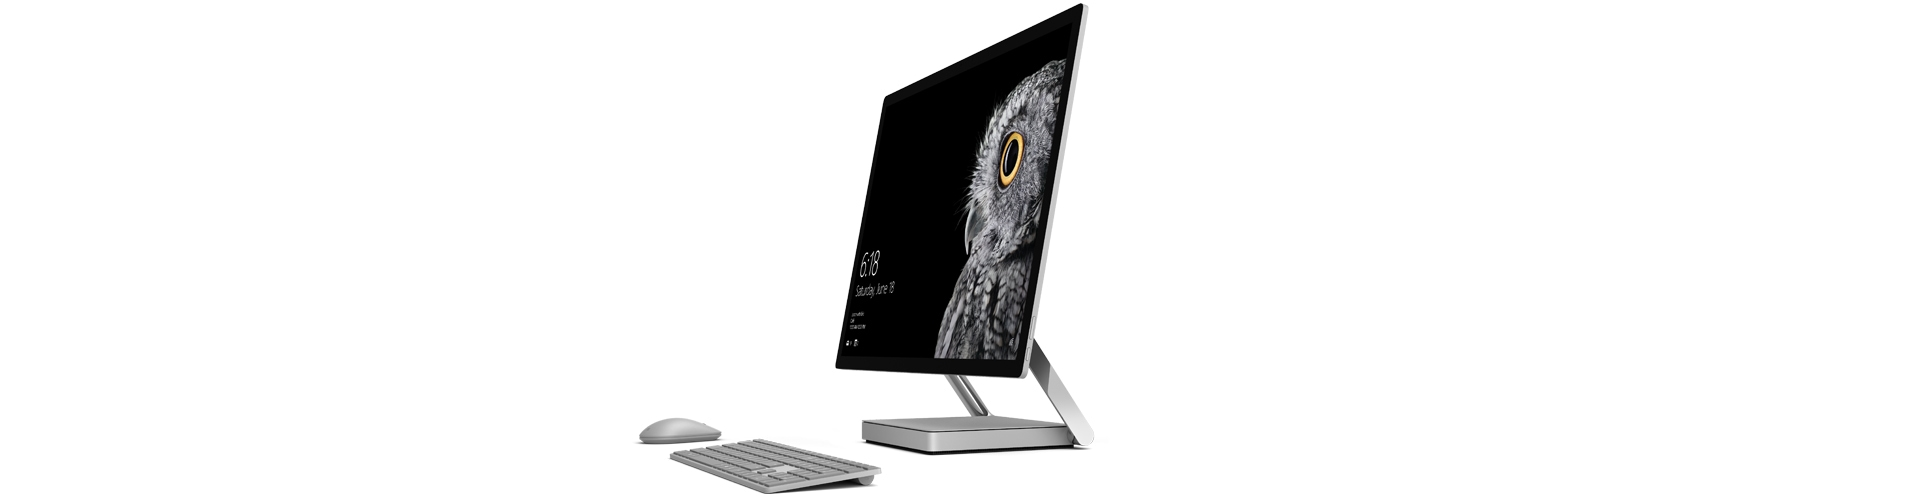 Surface Studio in rechtopstaande positie, met Surface Mouse en Keyboard.